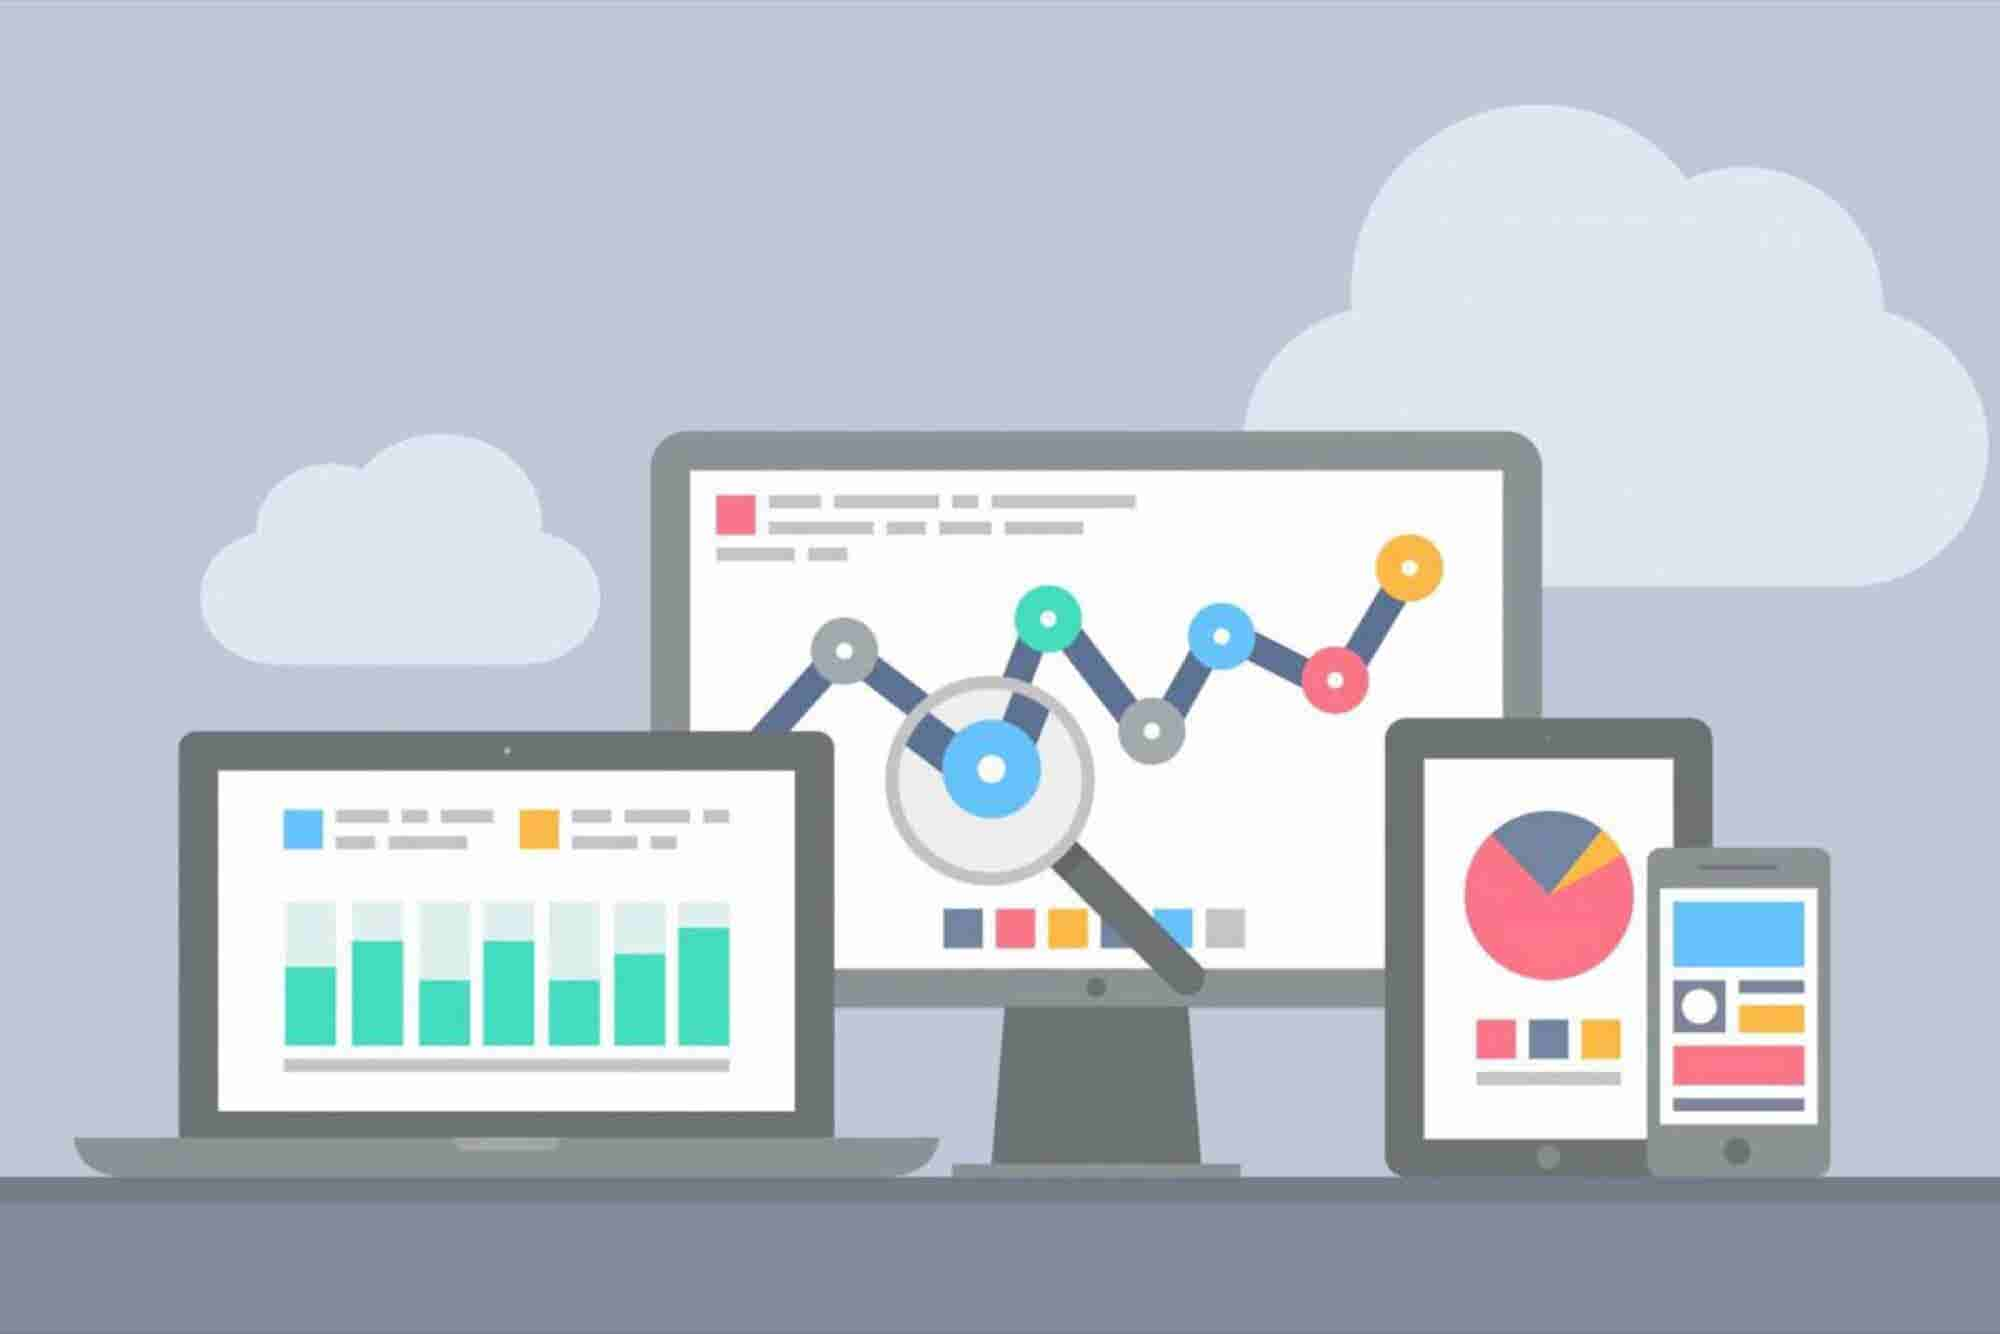 6 Changes Your 2015 SEO Strategy Must Focus On